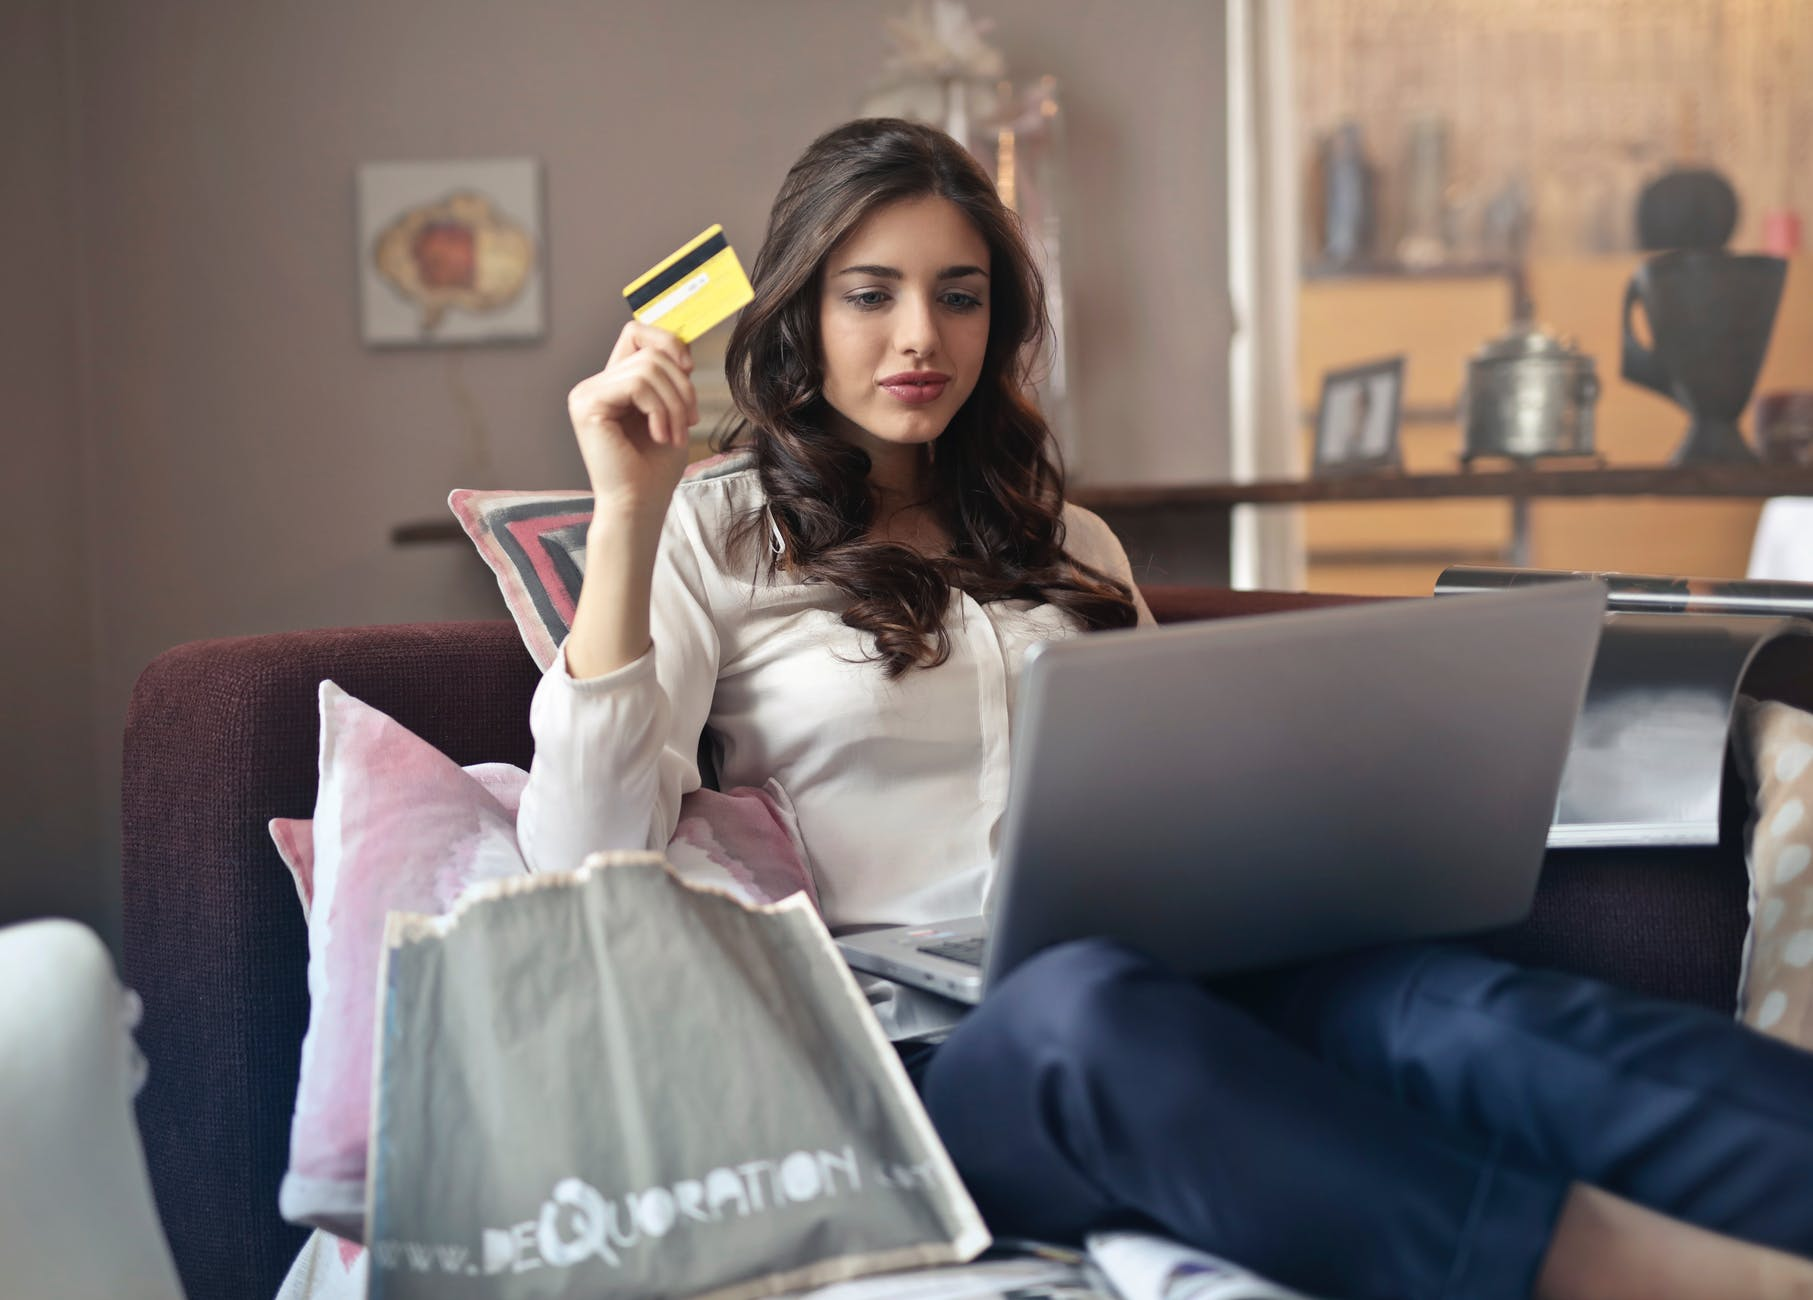 Common Millennial Spending Habits